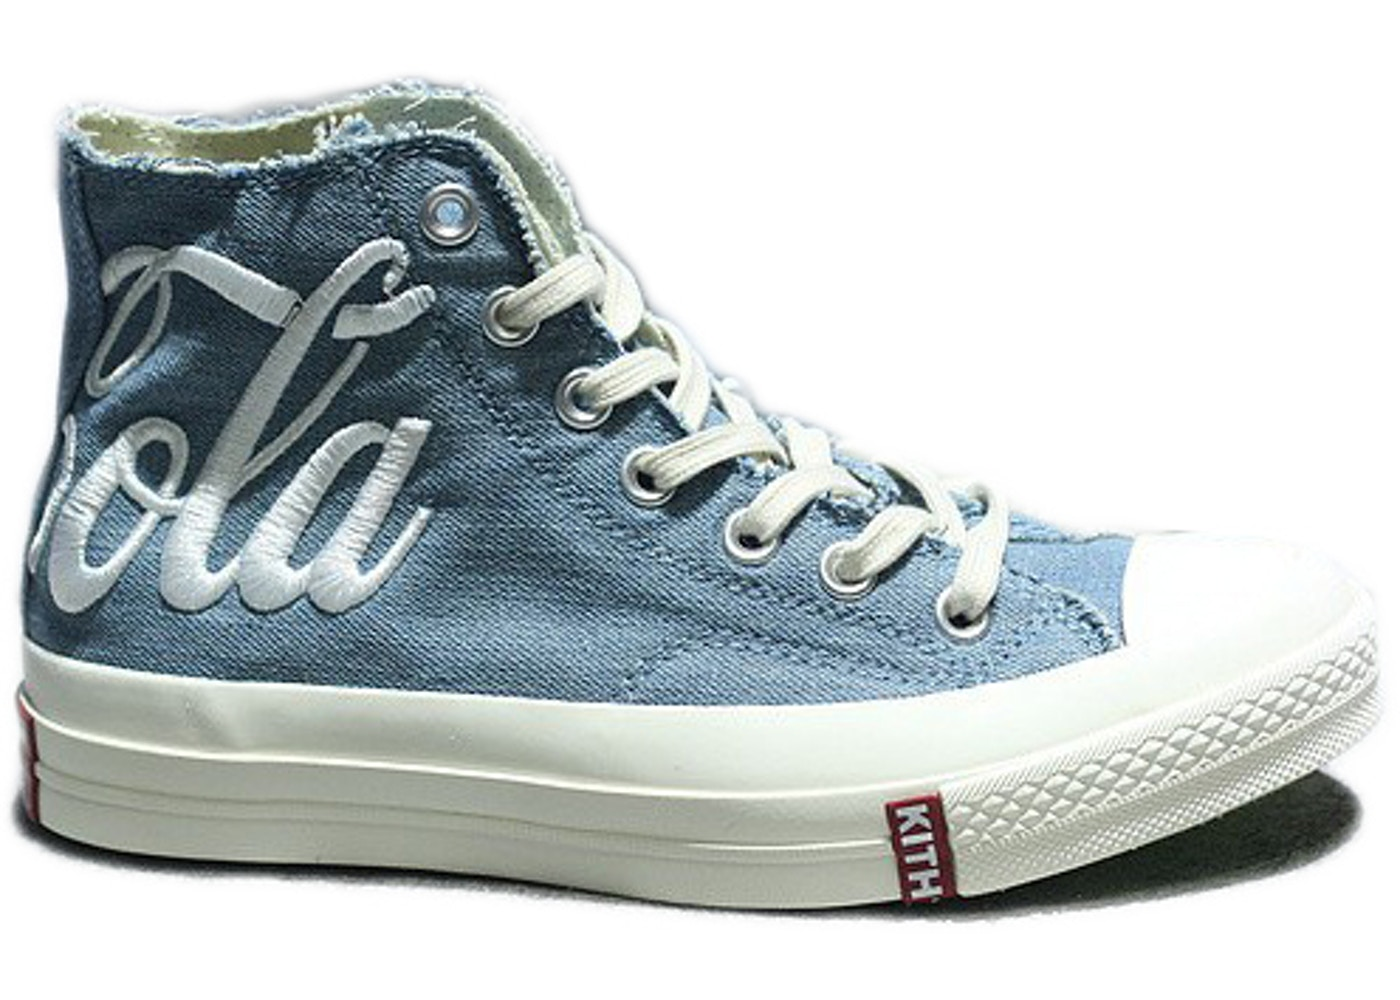 76758bd0e6e0 Converse Chuck Taylor All-Star 70s Hi Kith Coca-Cola Friends and ...